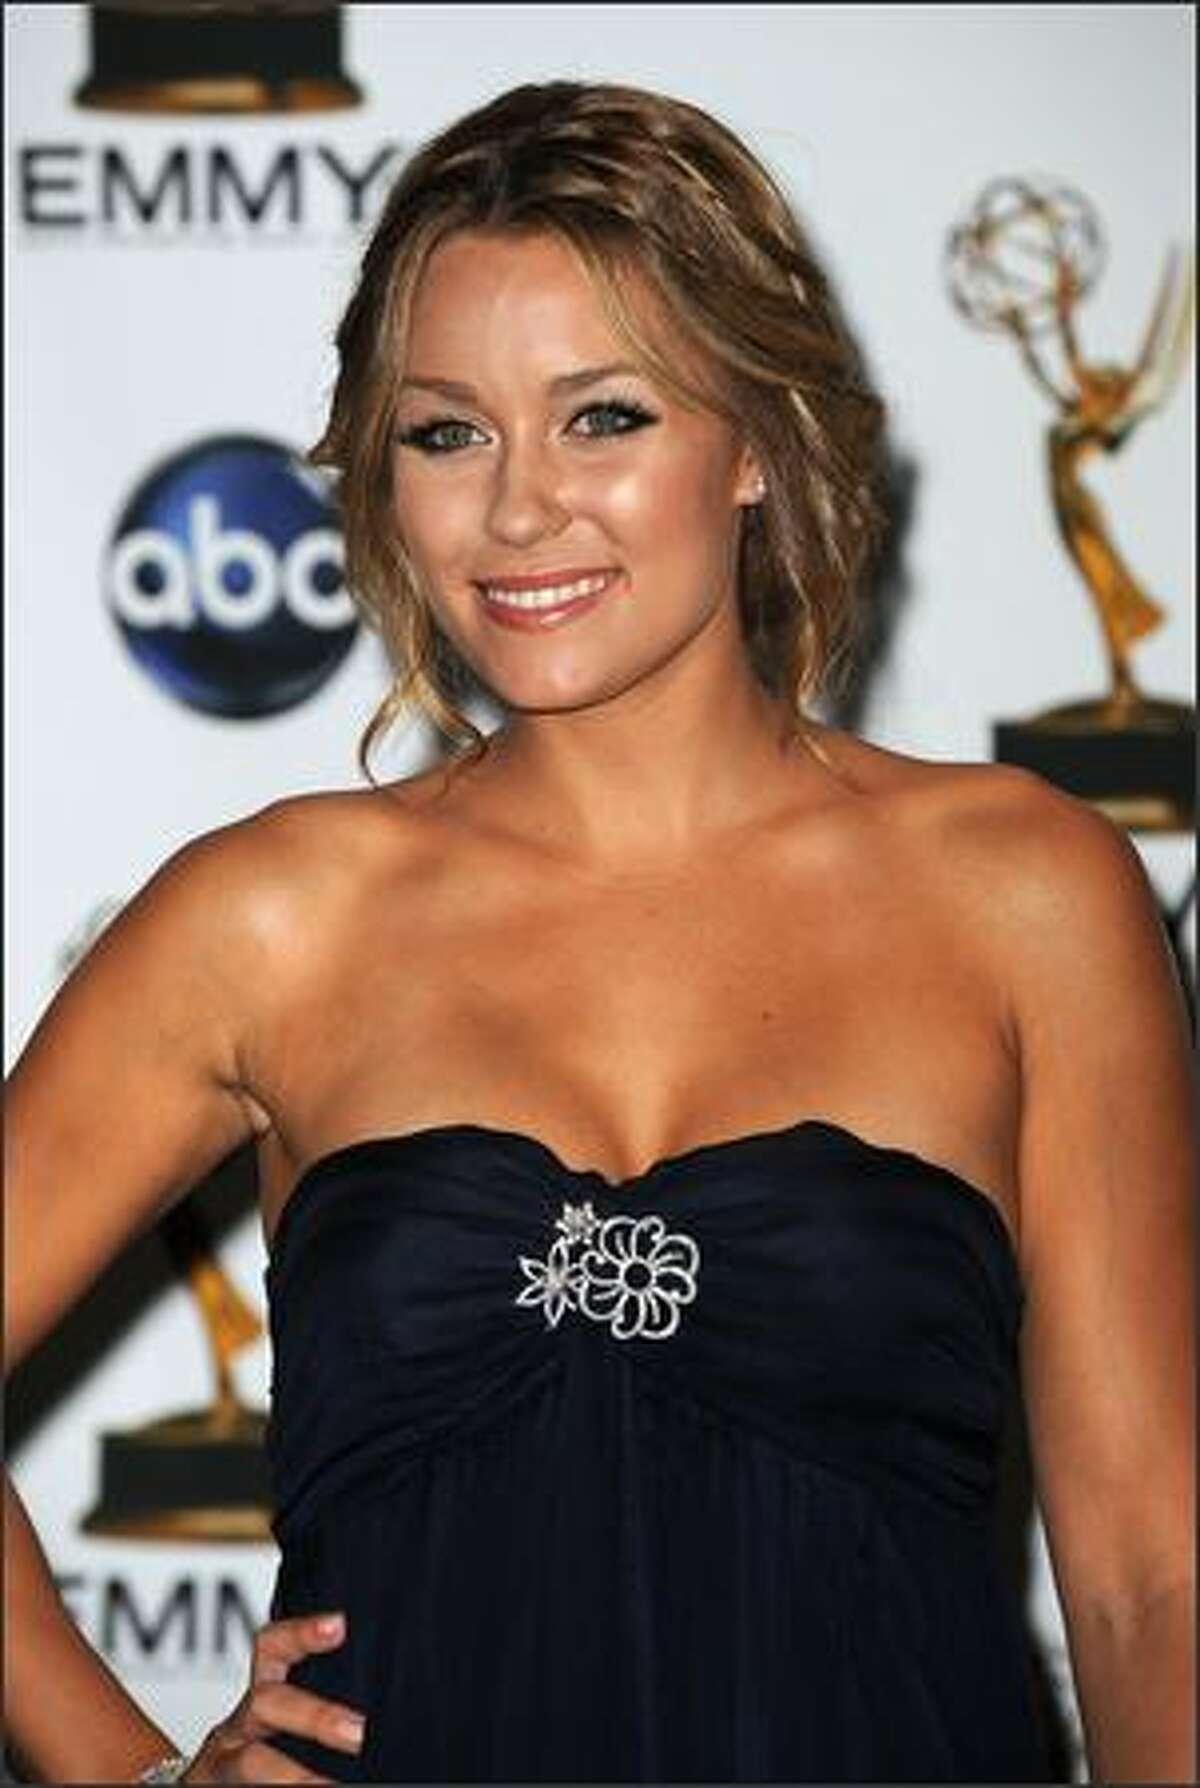 Actress Lauren Conrad poses in the press room at the 60th Primetime Emmy Awards at the Noika Theatre in Los Angeles on September 21, 2008. AFP PHOTO Robyn BECK